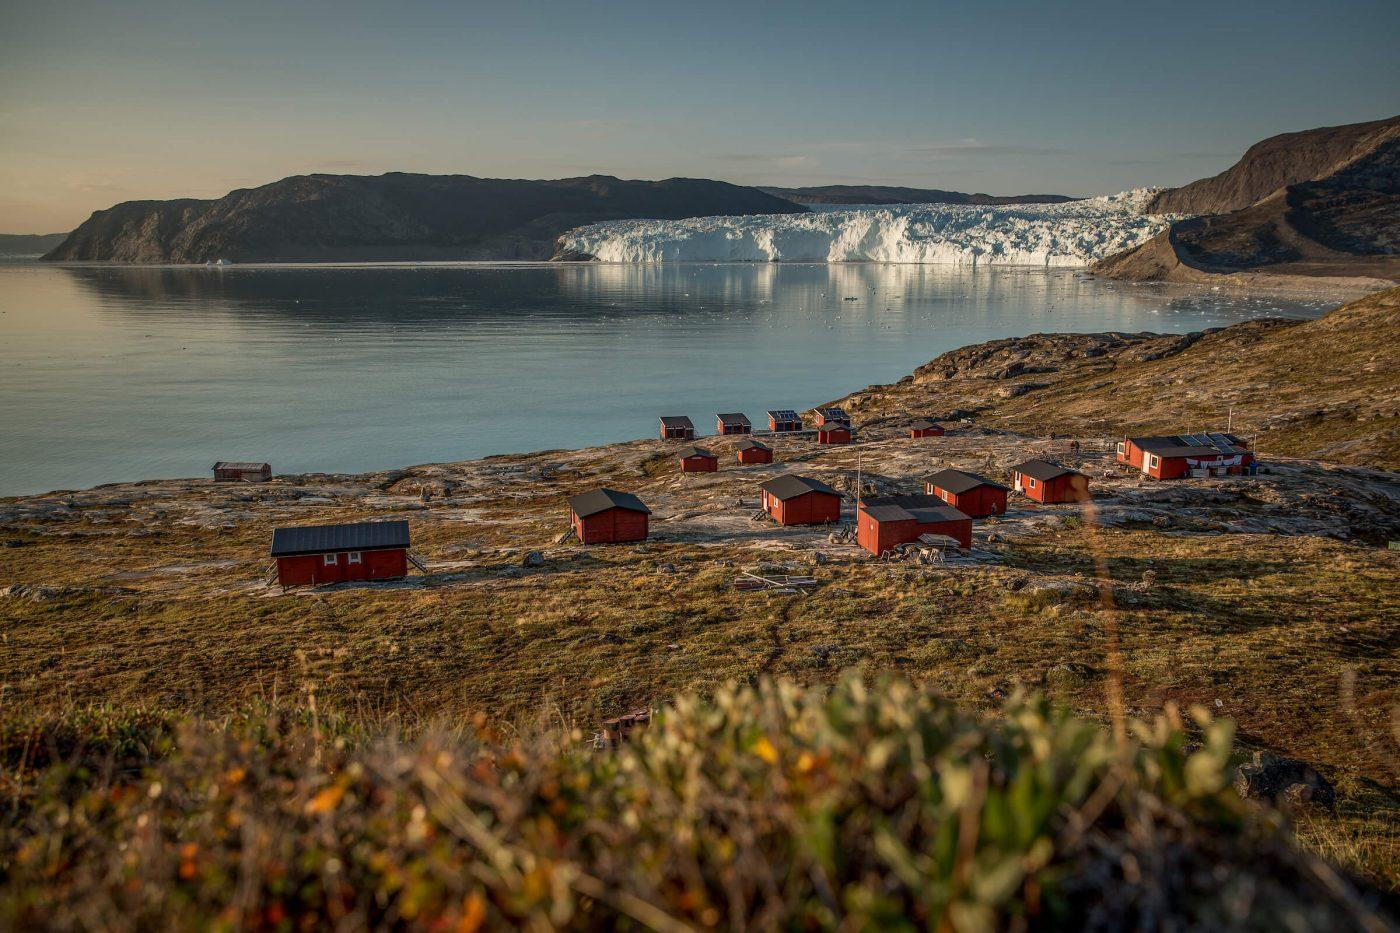 An overview of the Eqi Glacier Lodge camp with the glacier in the background in North Greenland. By Mads Pihl